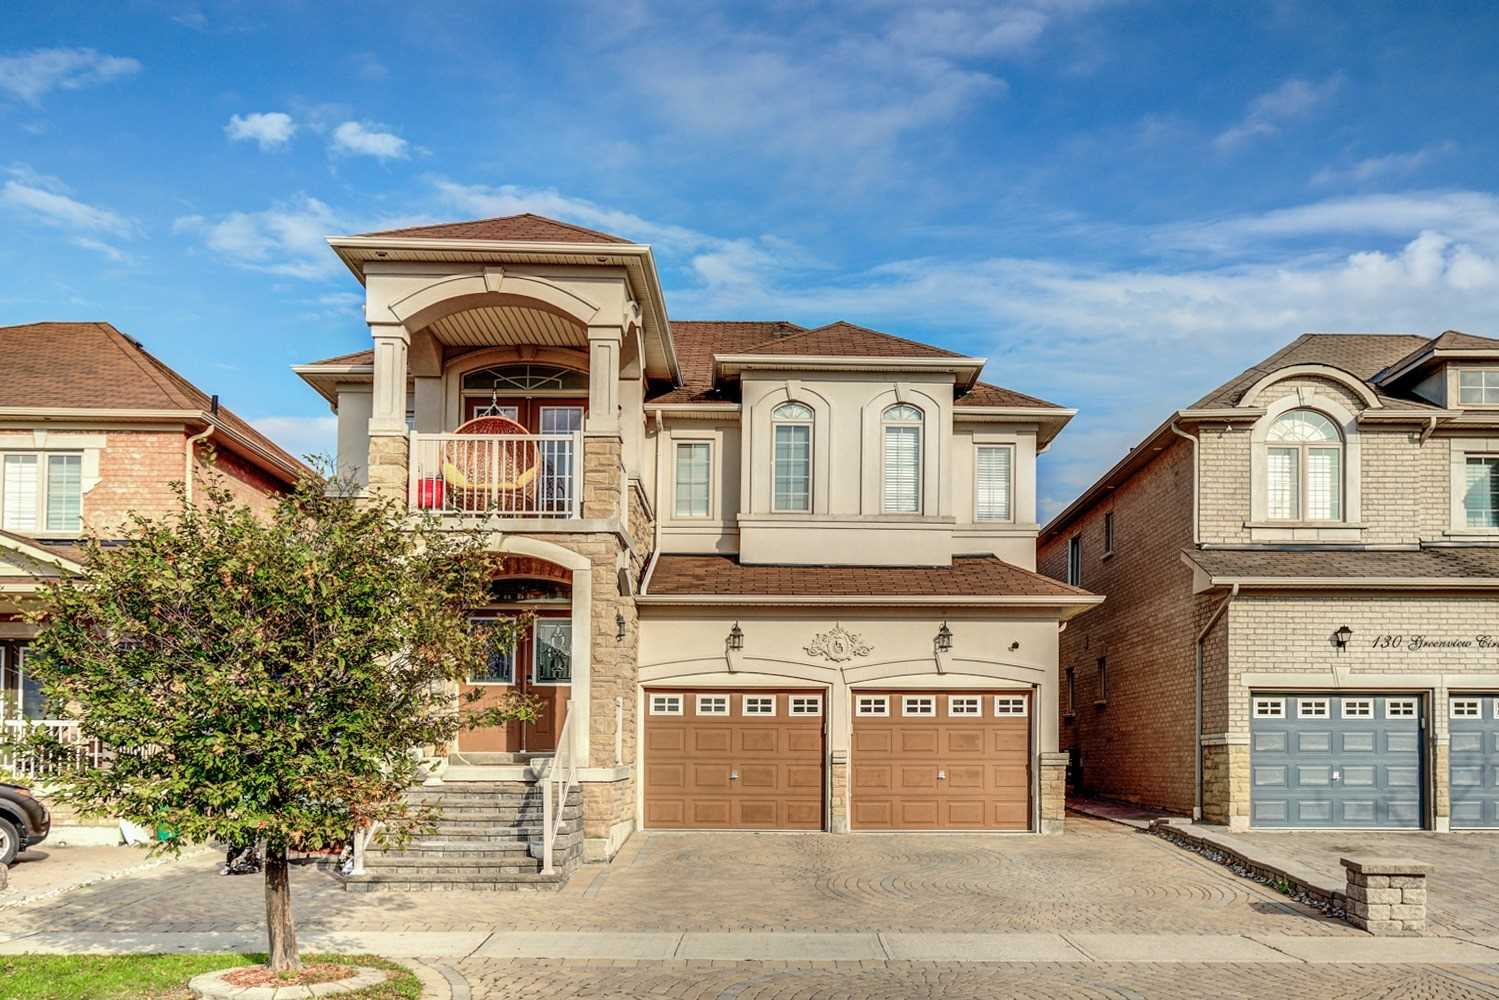 Detached house For Lease In Vaughan - 134 Greenview Circ, Vaughan, Ontario, Canada L6A0B6 , 4 Bedrooms Bedrooms, ,4 BathroomsBathrooms,Detached,For Lease,Greenview